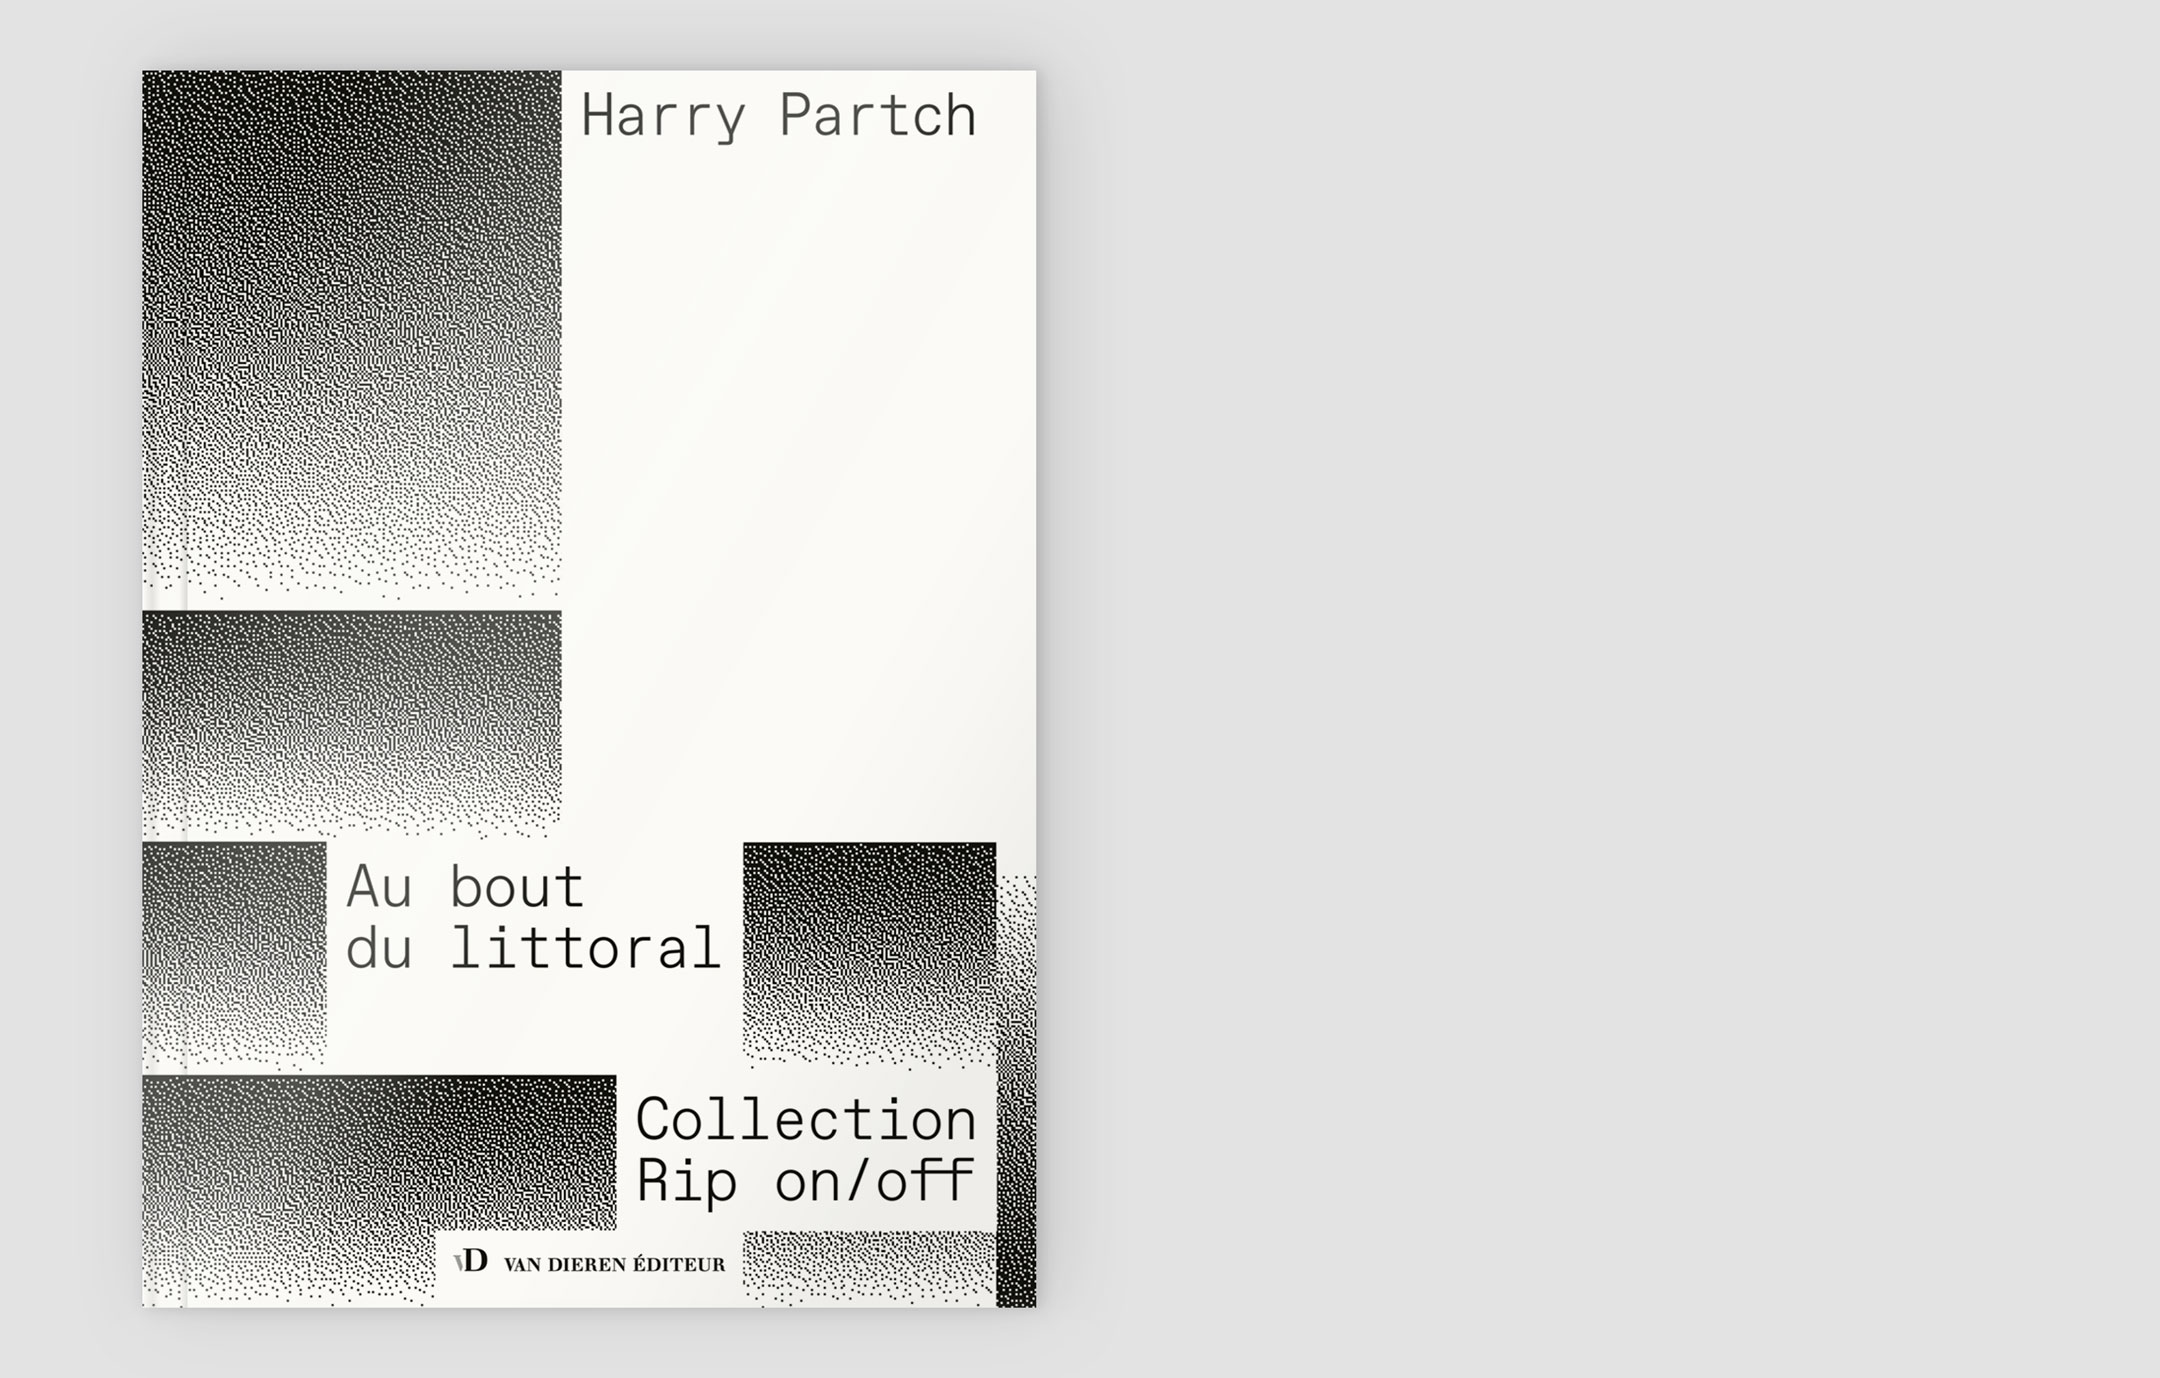 Harry Partch, Au bout du littoral